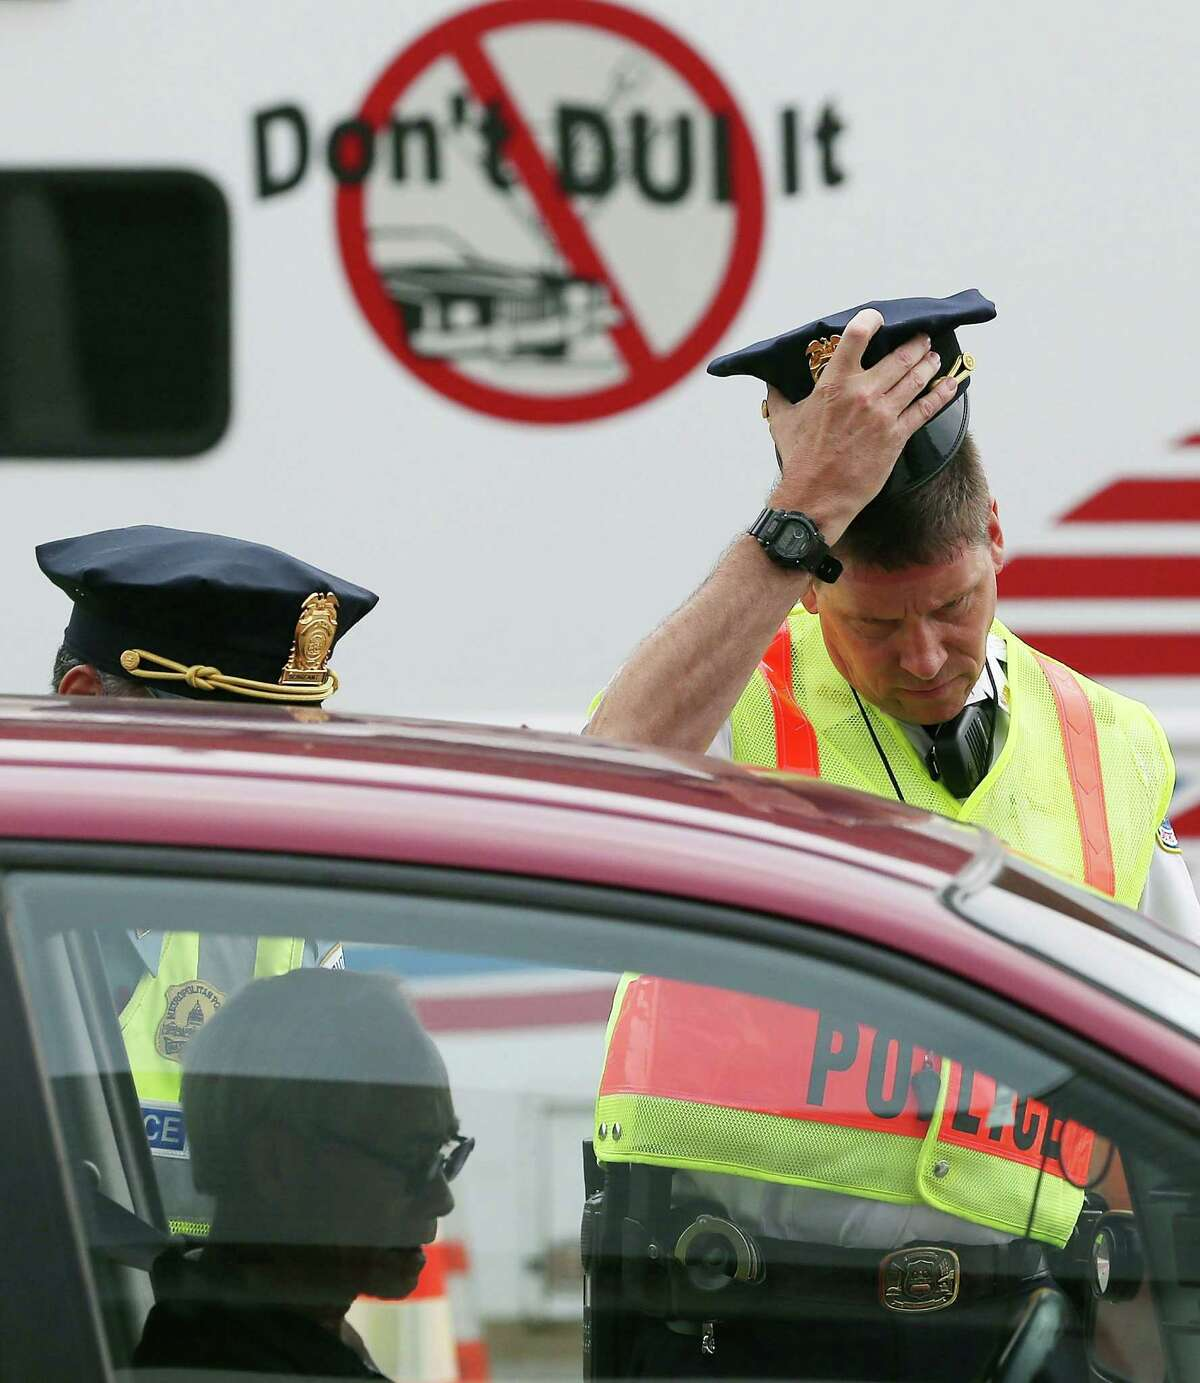 Washington Metropolitan Police conduct a sobriety check point associated with a news conference on drunk driving, in August in Washington, DC.